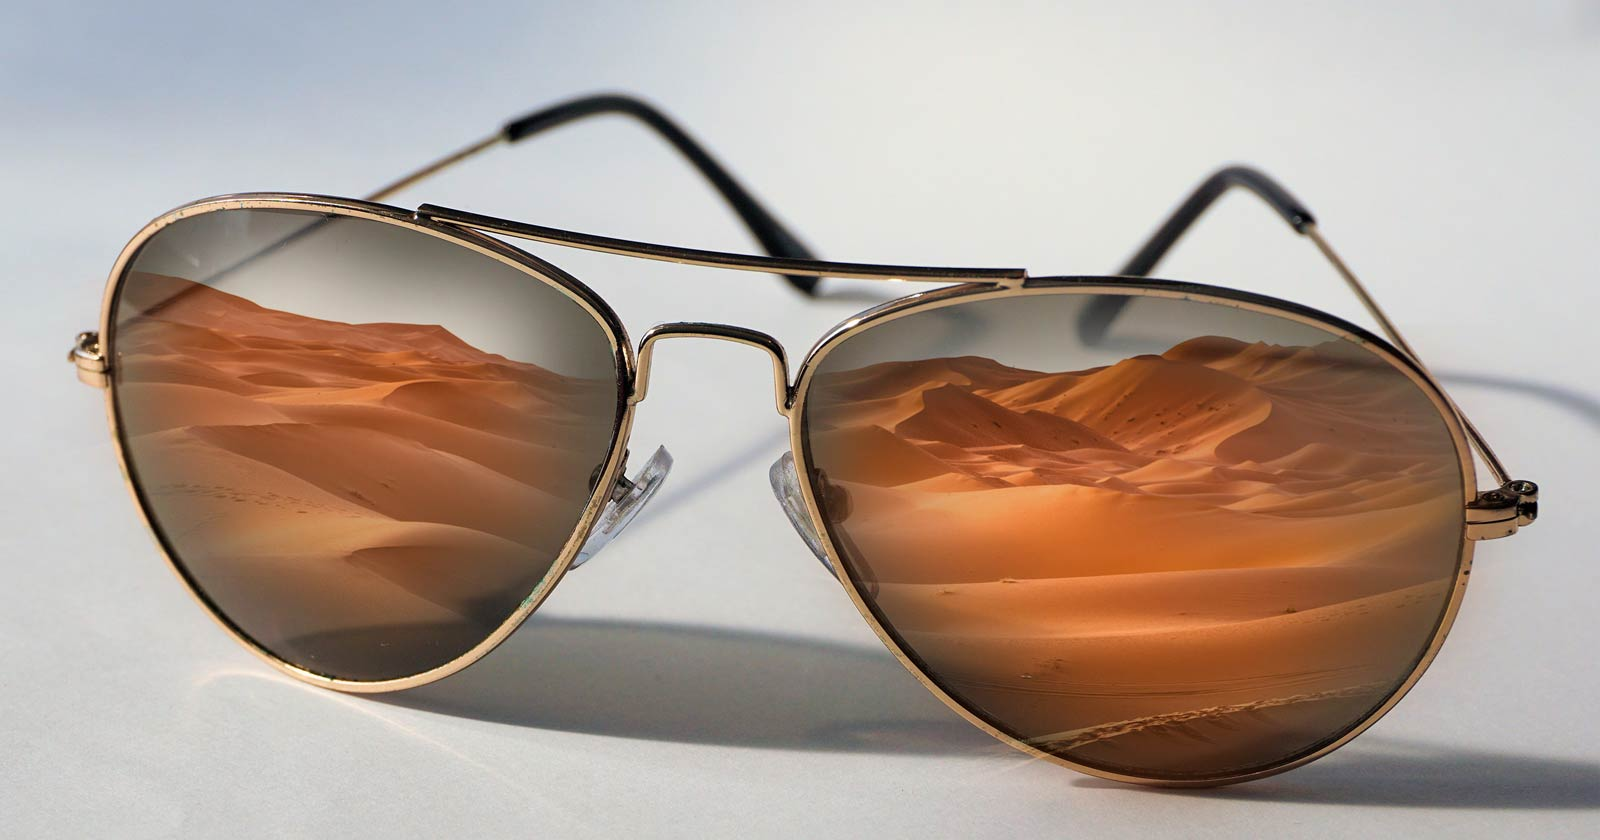 The History of Aviator Sunglasses